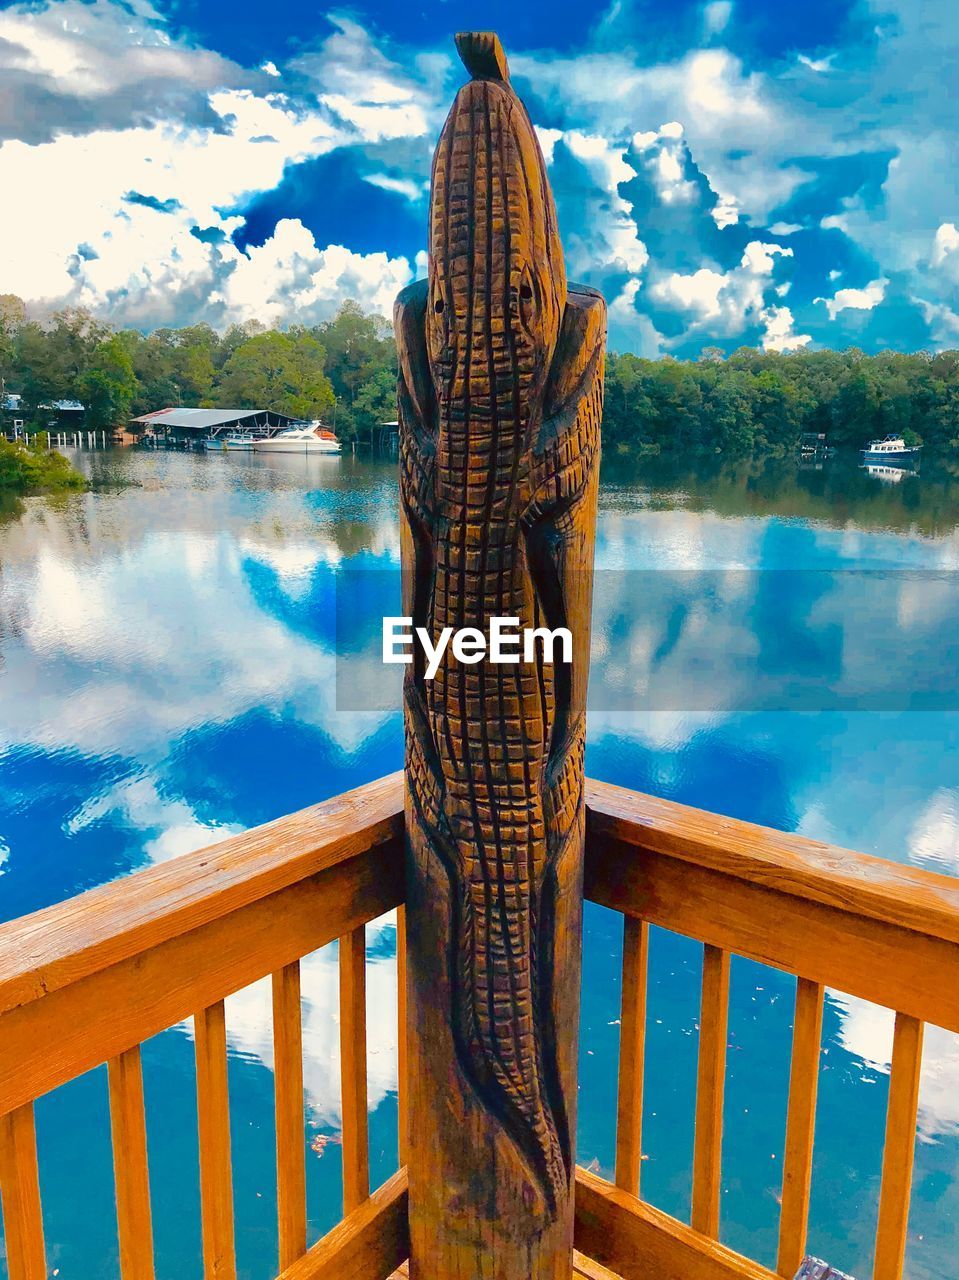 water, cloud - sky, sky, reflection, railing, nature, lake, wood - material, day, architecture, tranquility, no people, built structure, beauty in nature, scenics - nature, tranquil scene, outdoors, tree, turquoise colored